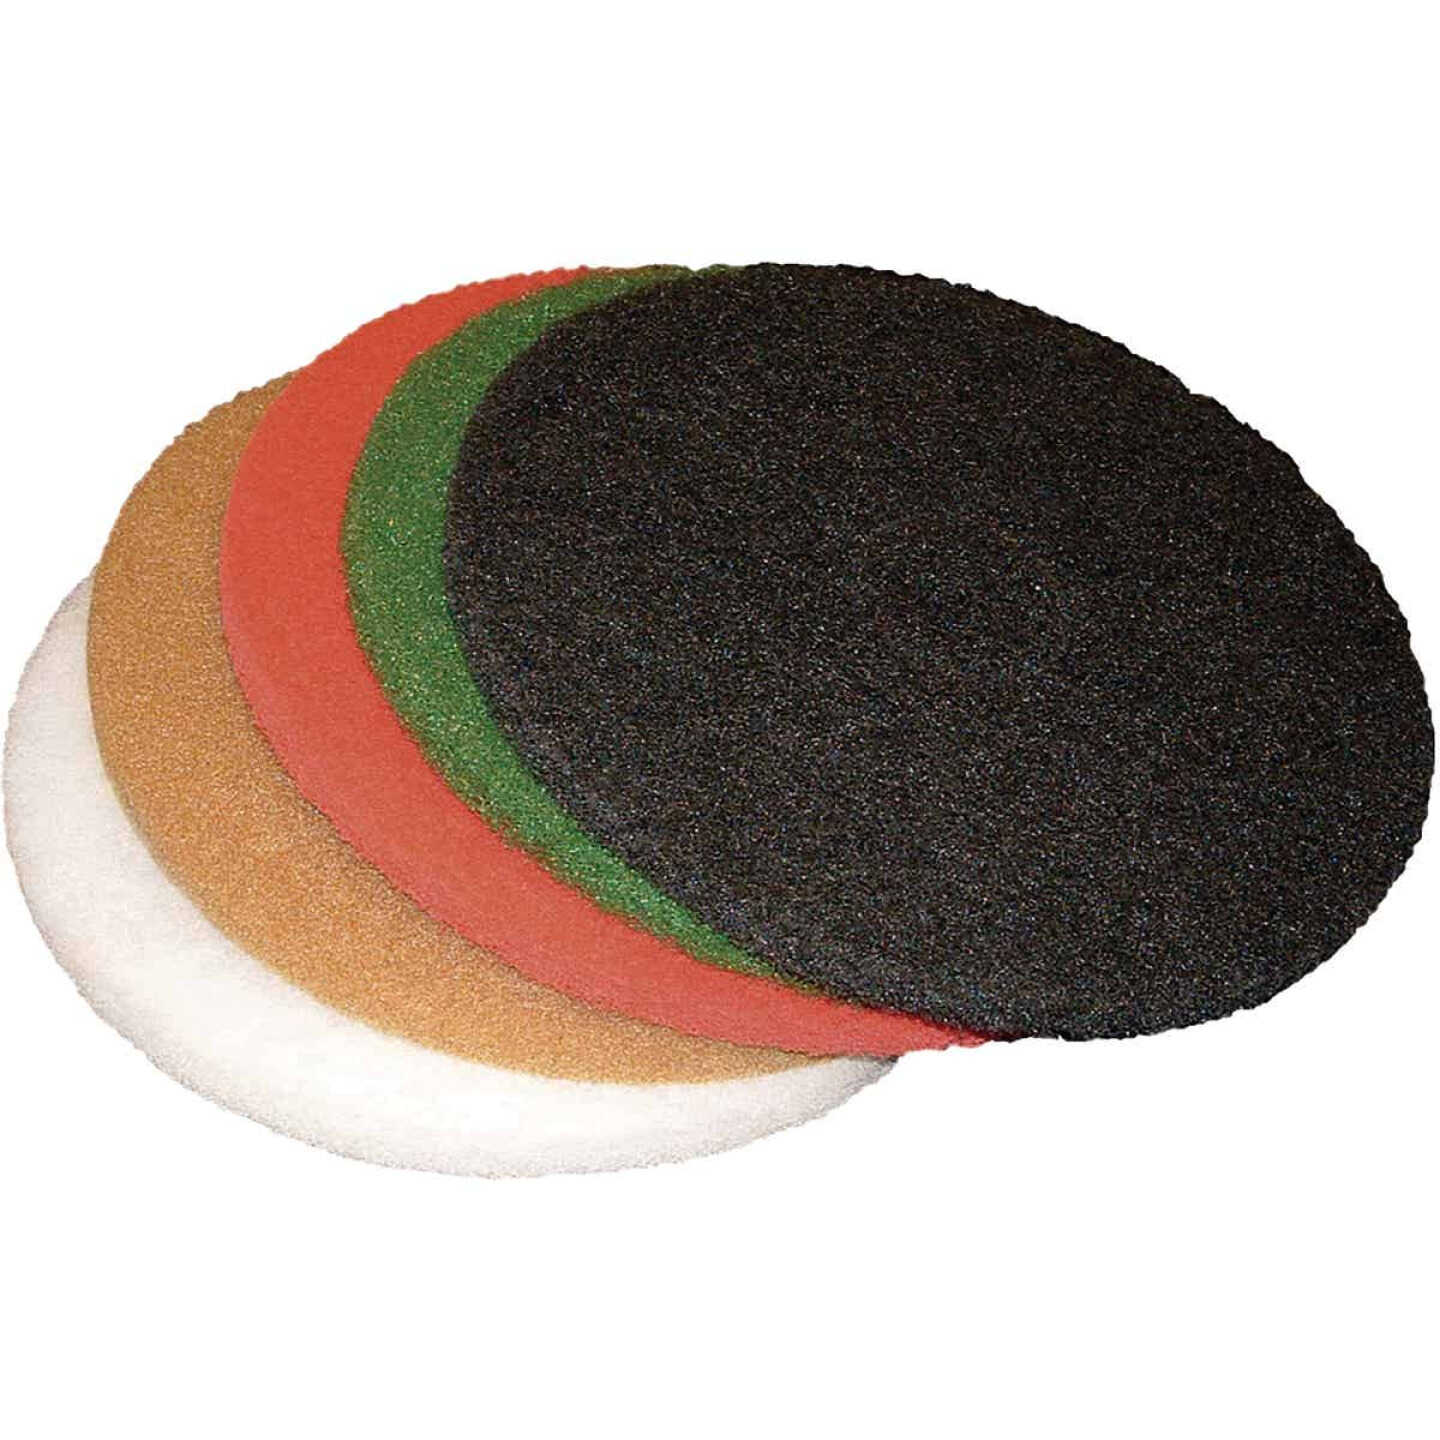 Virginia Abrasives 17 In. Red Buffing Pad Image 1